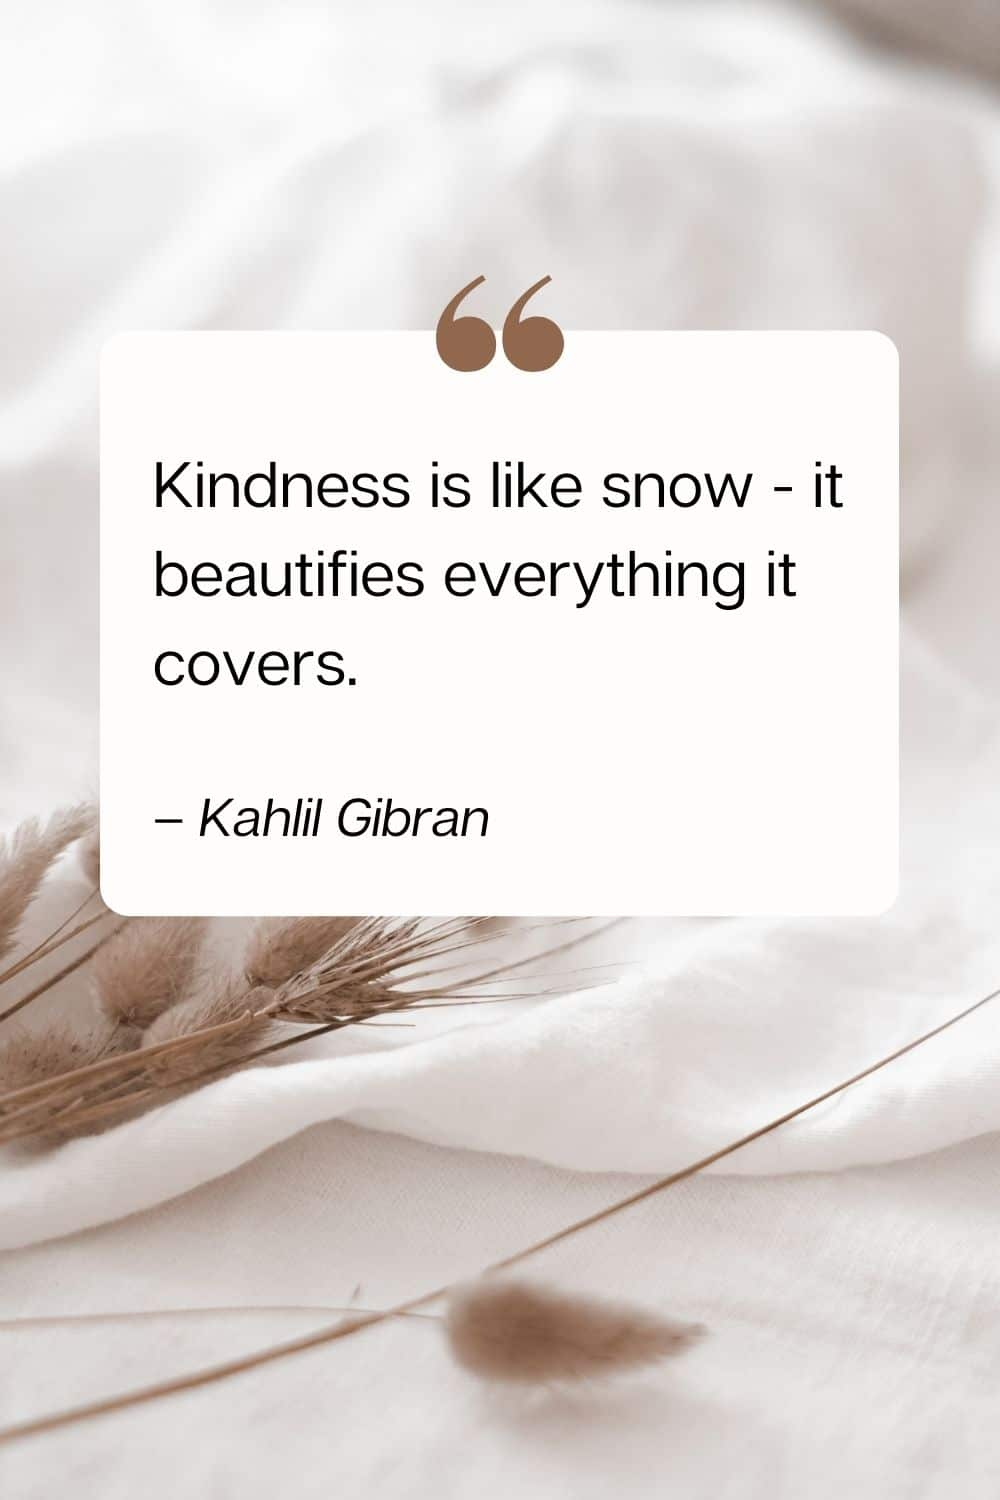 kindness quote - Kindness is like snow - it beautifies everything it covers. – Kahlil Gibran